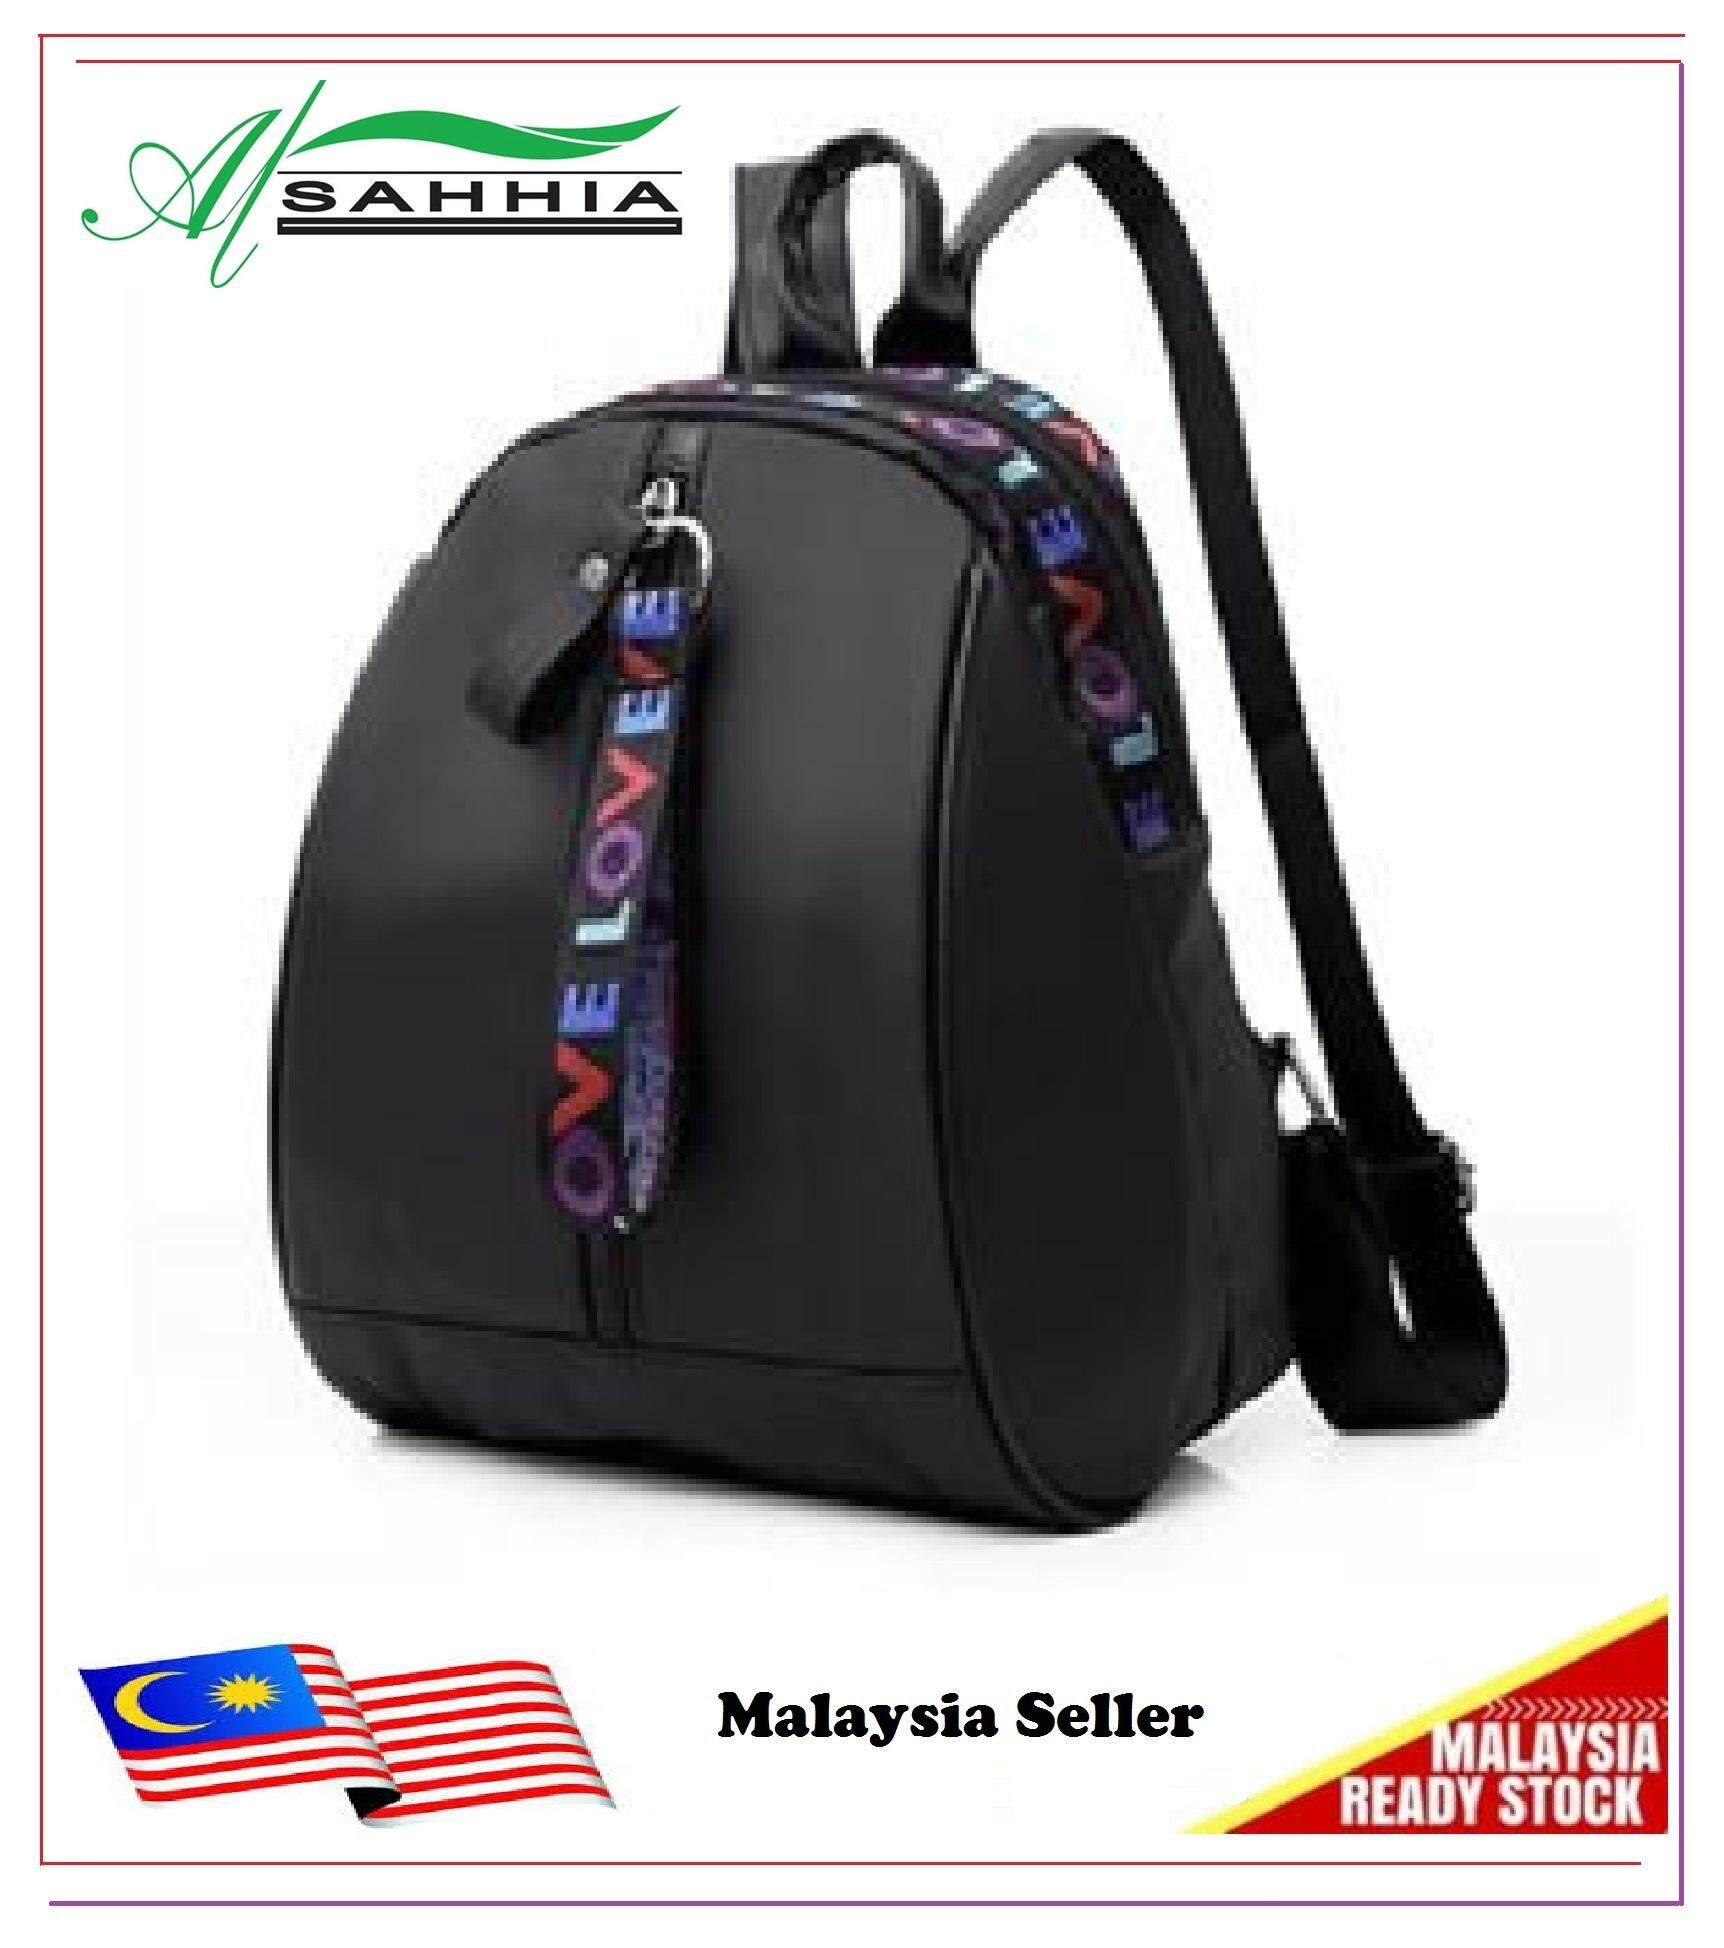 c42bf44c98c Al Sahhia Ready Stock Fashion Women Nylon Backpack Waterproof Large Special  Zip